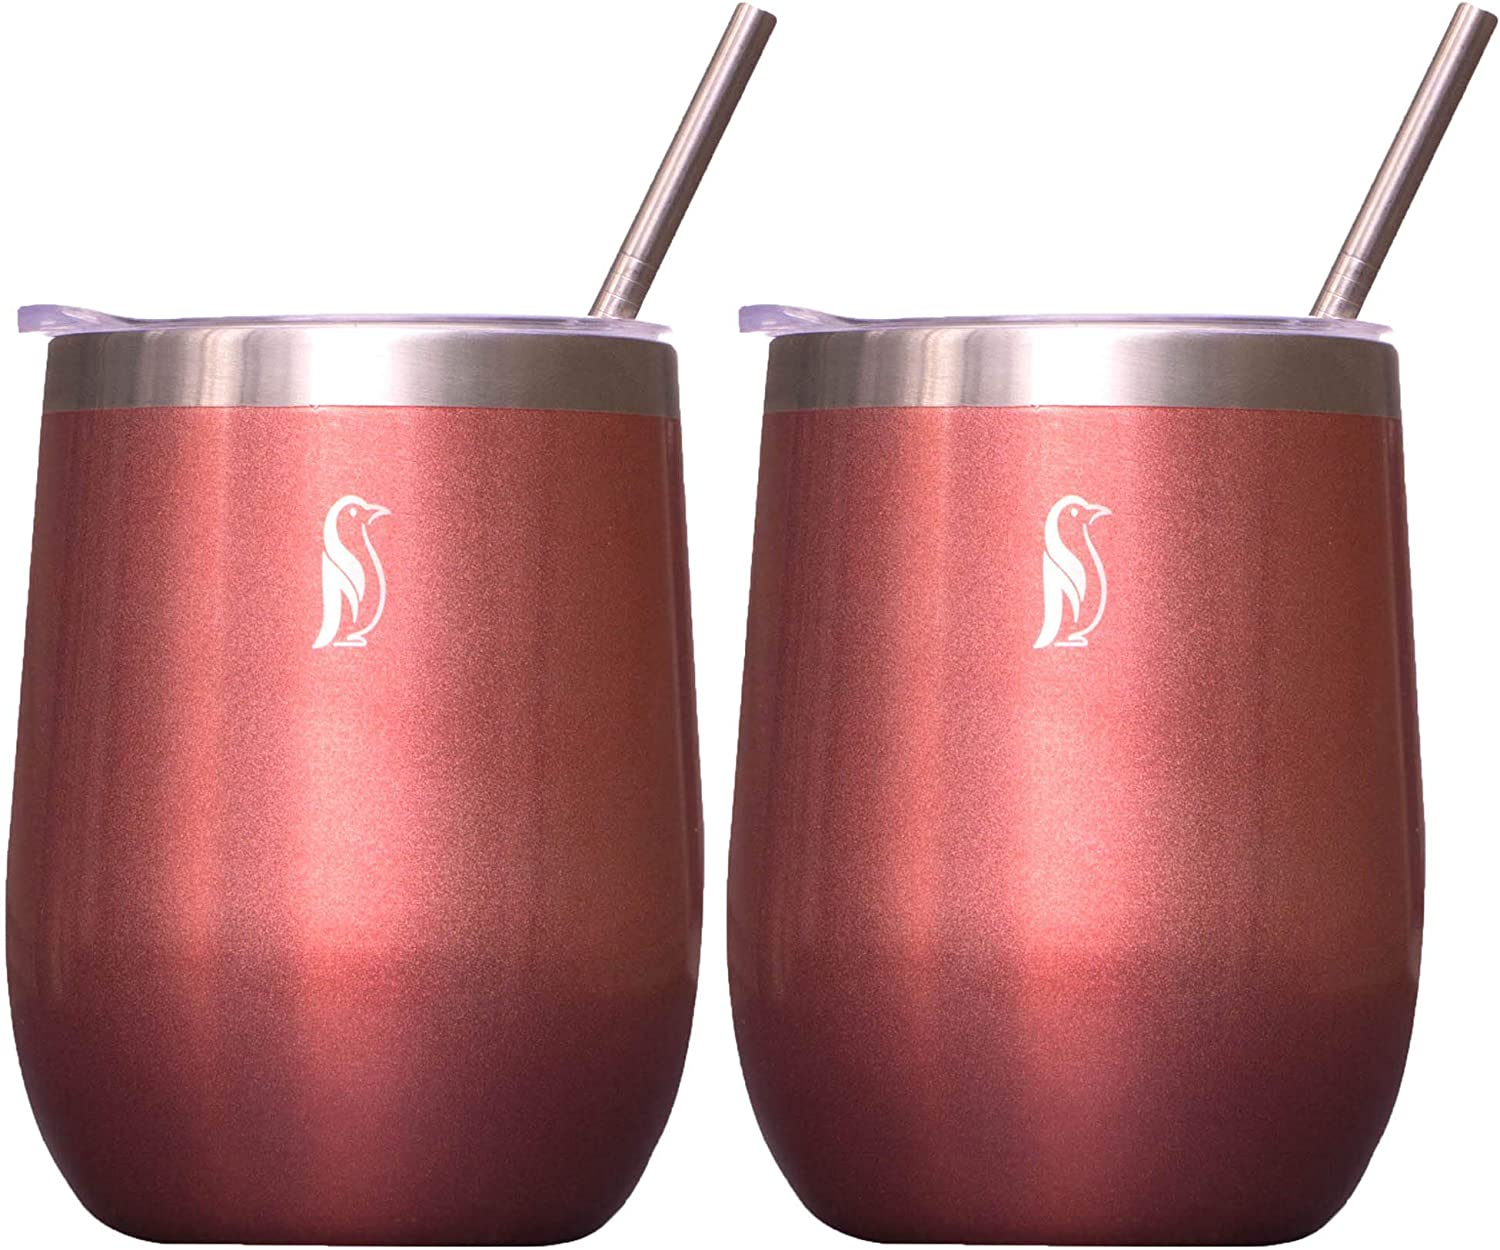 Sizzlin Penguin Insulated Wine Tumbler with Lid and Straw – Vacuum Sealed Stainless Steel 12 oz Stemless Travel Wine Glass – BPA Free (Rose Gold)